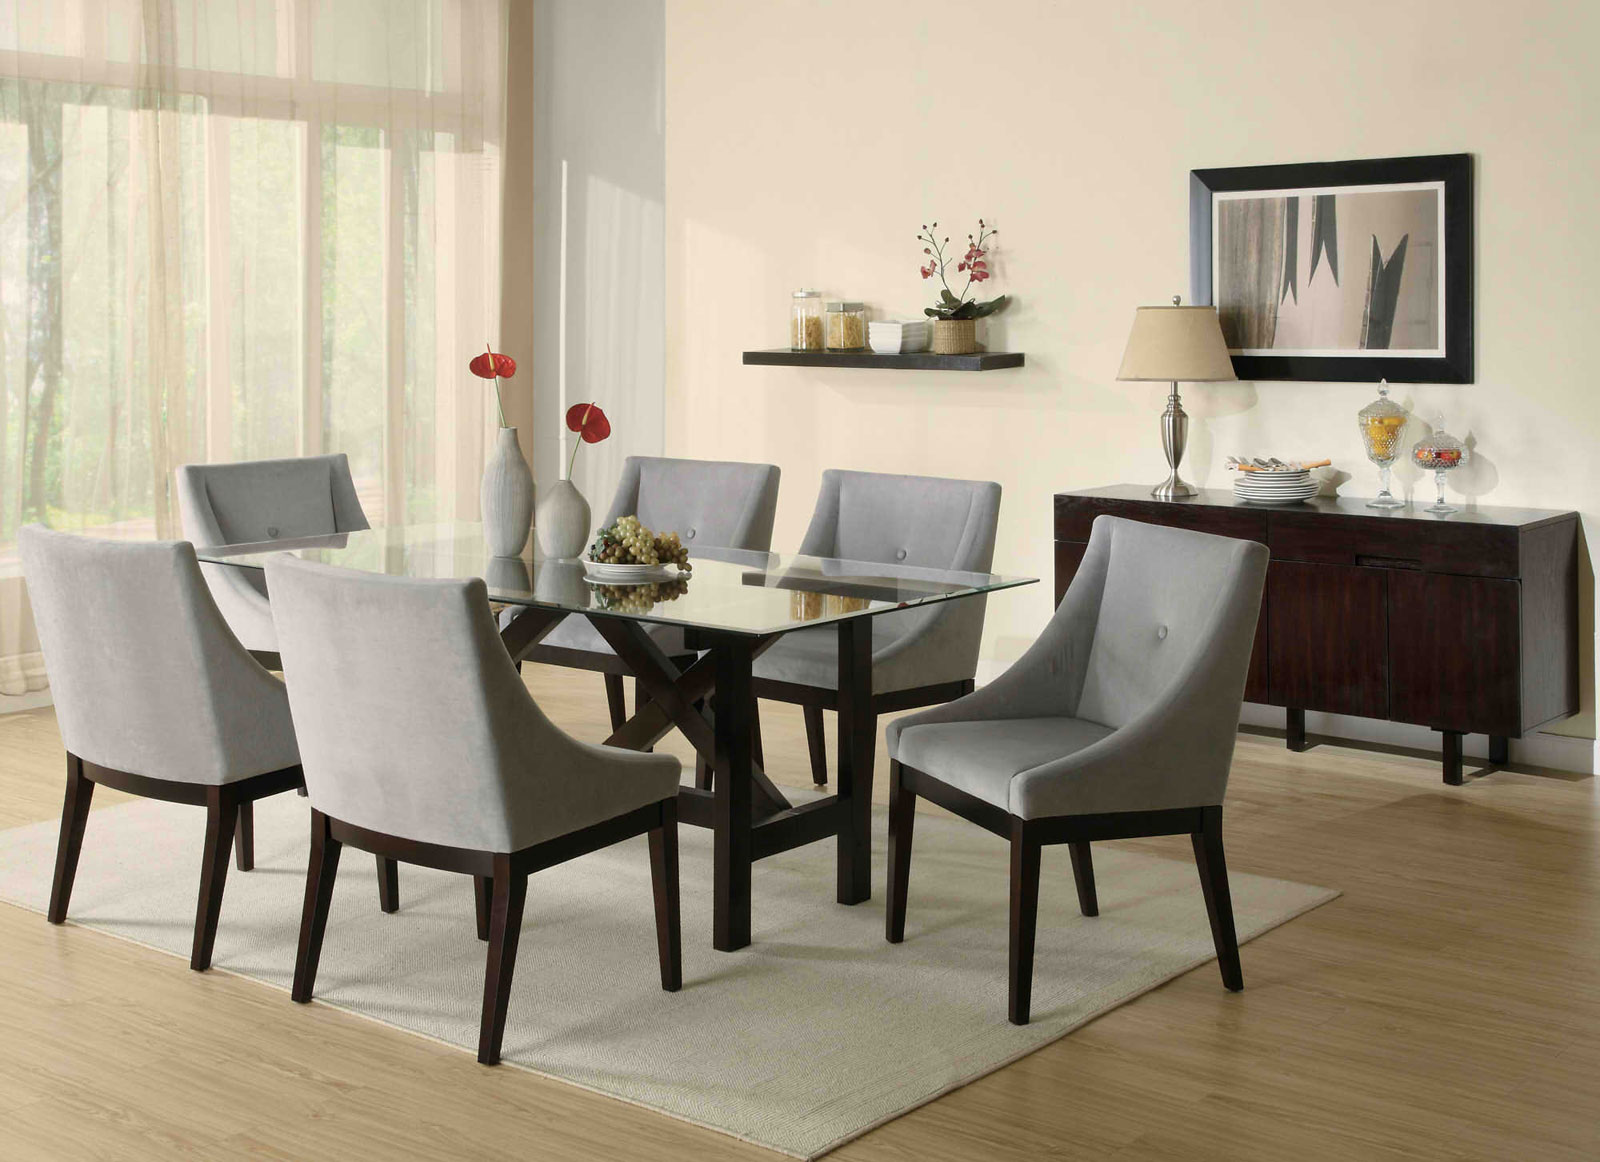 Good Unique Dining Room Chairs With Charming Traditional Dining Room With Modern Dining Room Sets Furnished With Grey Chairs And Glass Table On Rug And Completed With Wooden Cupboards